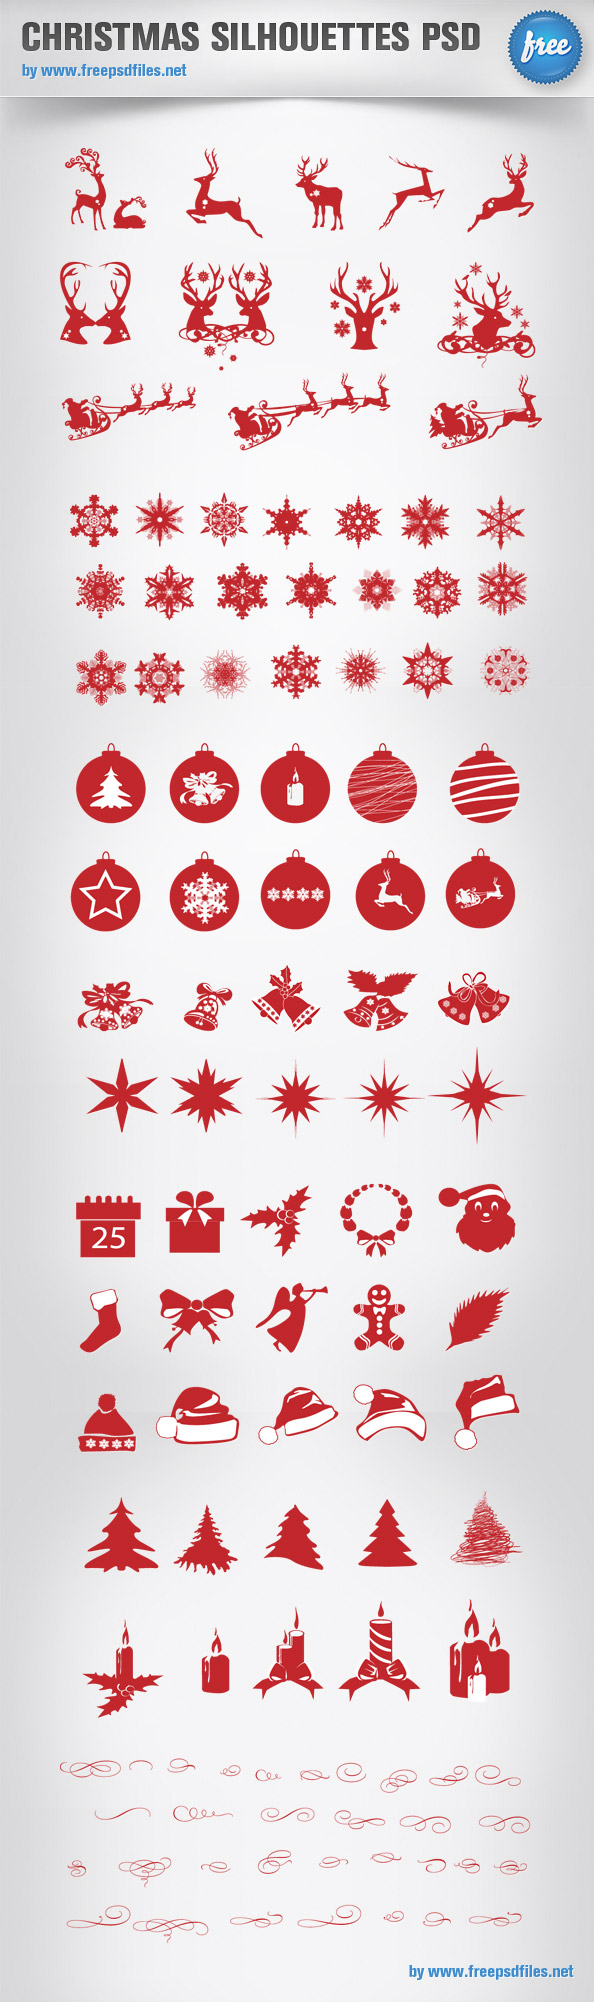 Christmas Silhouettes PSD